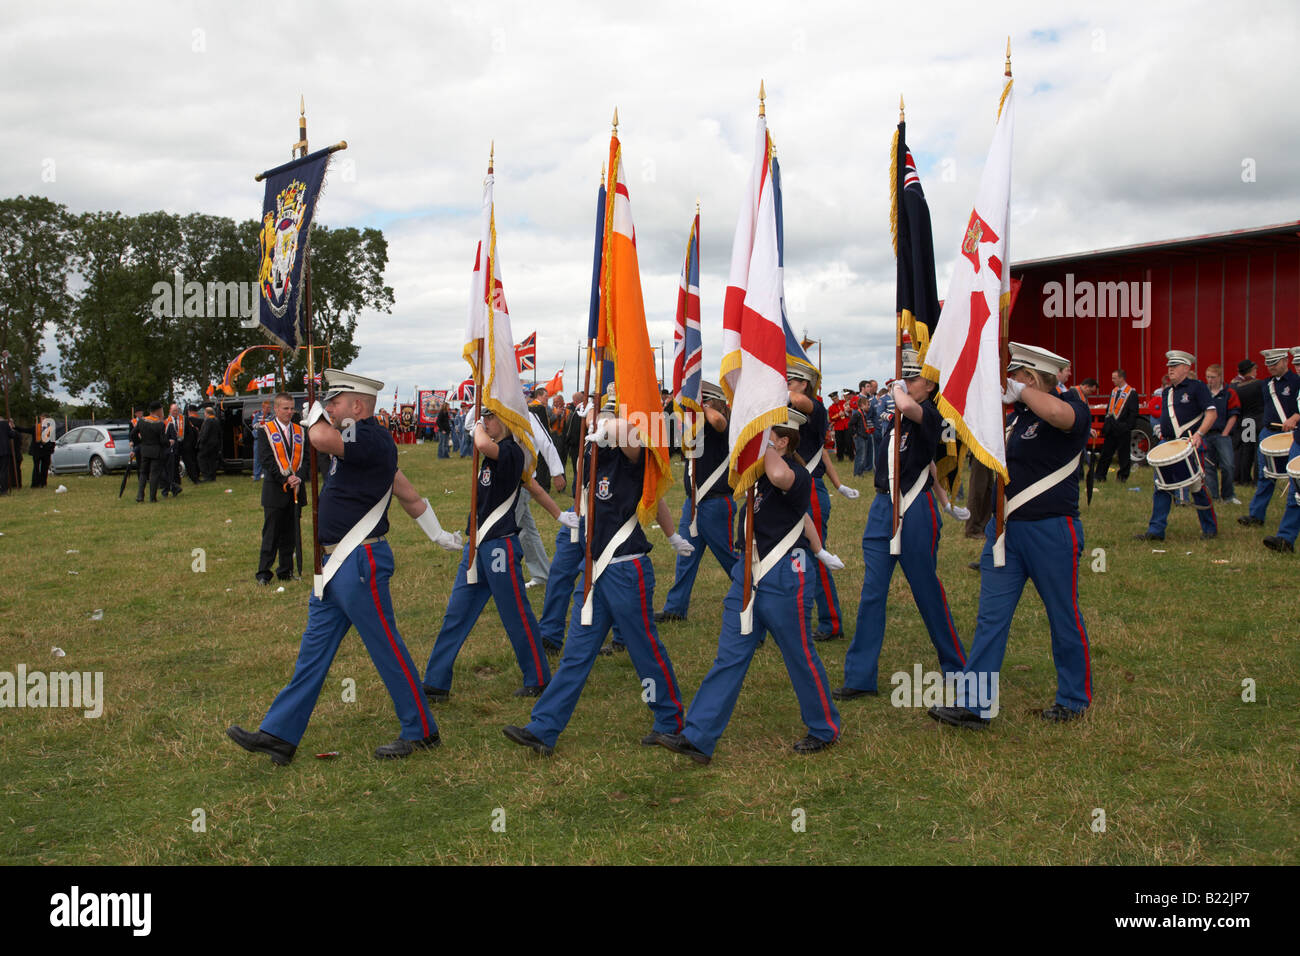 loyalist flute band colour party parade from the field during 12th July Orangefest celebrations in Dromara county - Stock Image